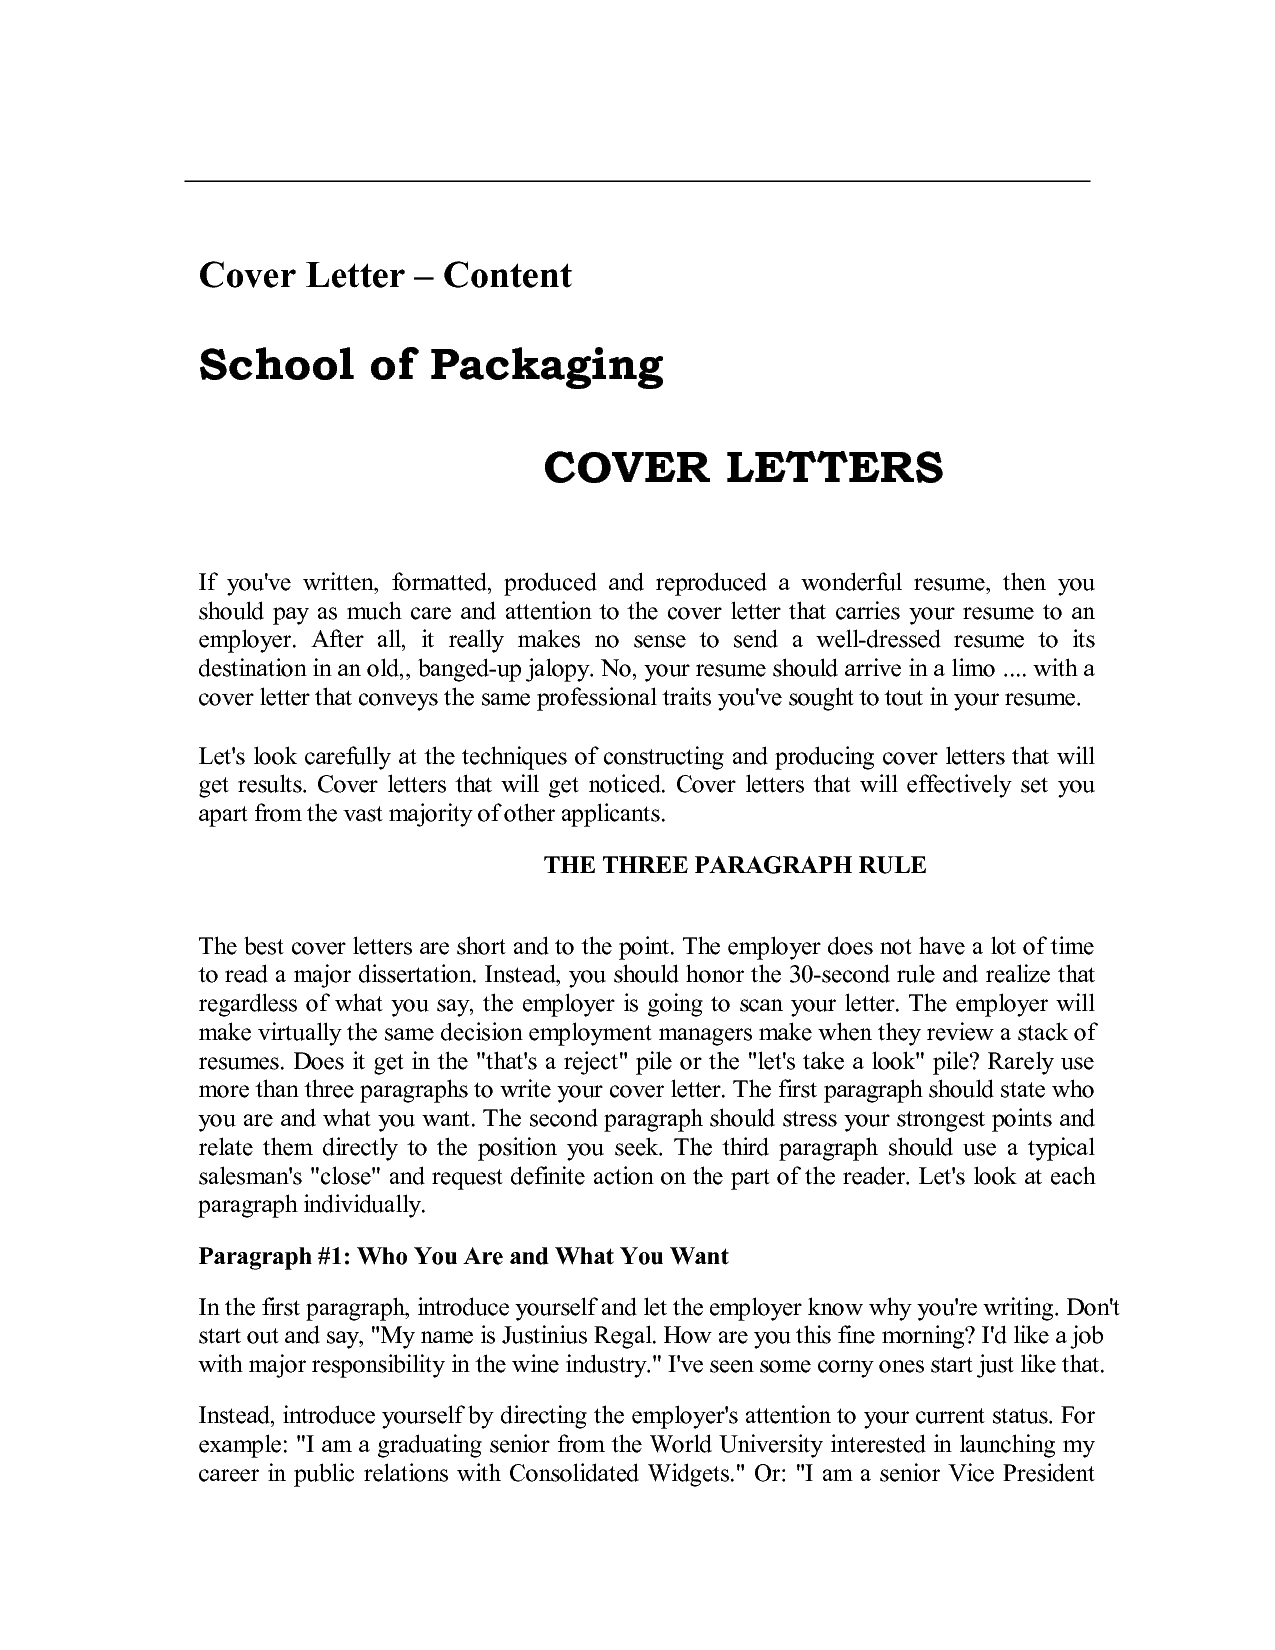 resume cover letter pdf - Free Sample Cover Letter For Resume